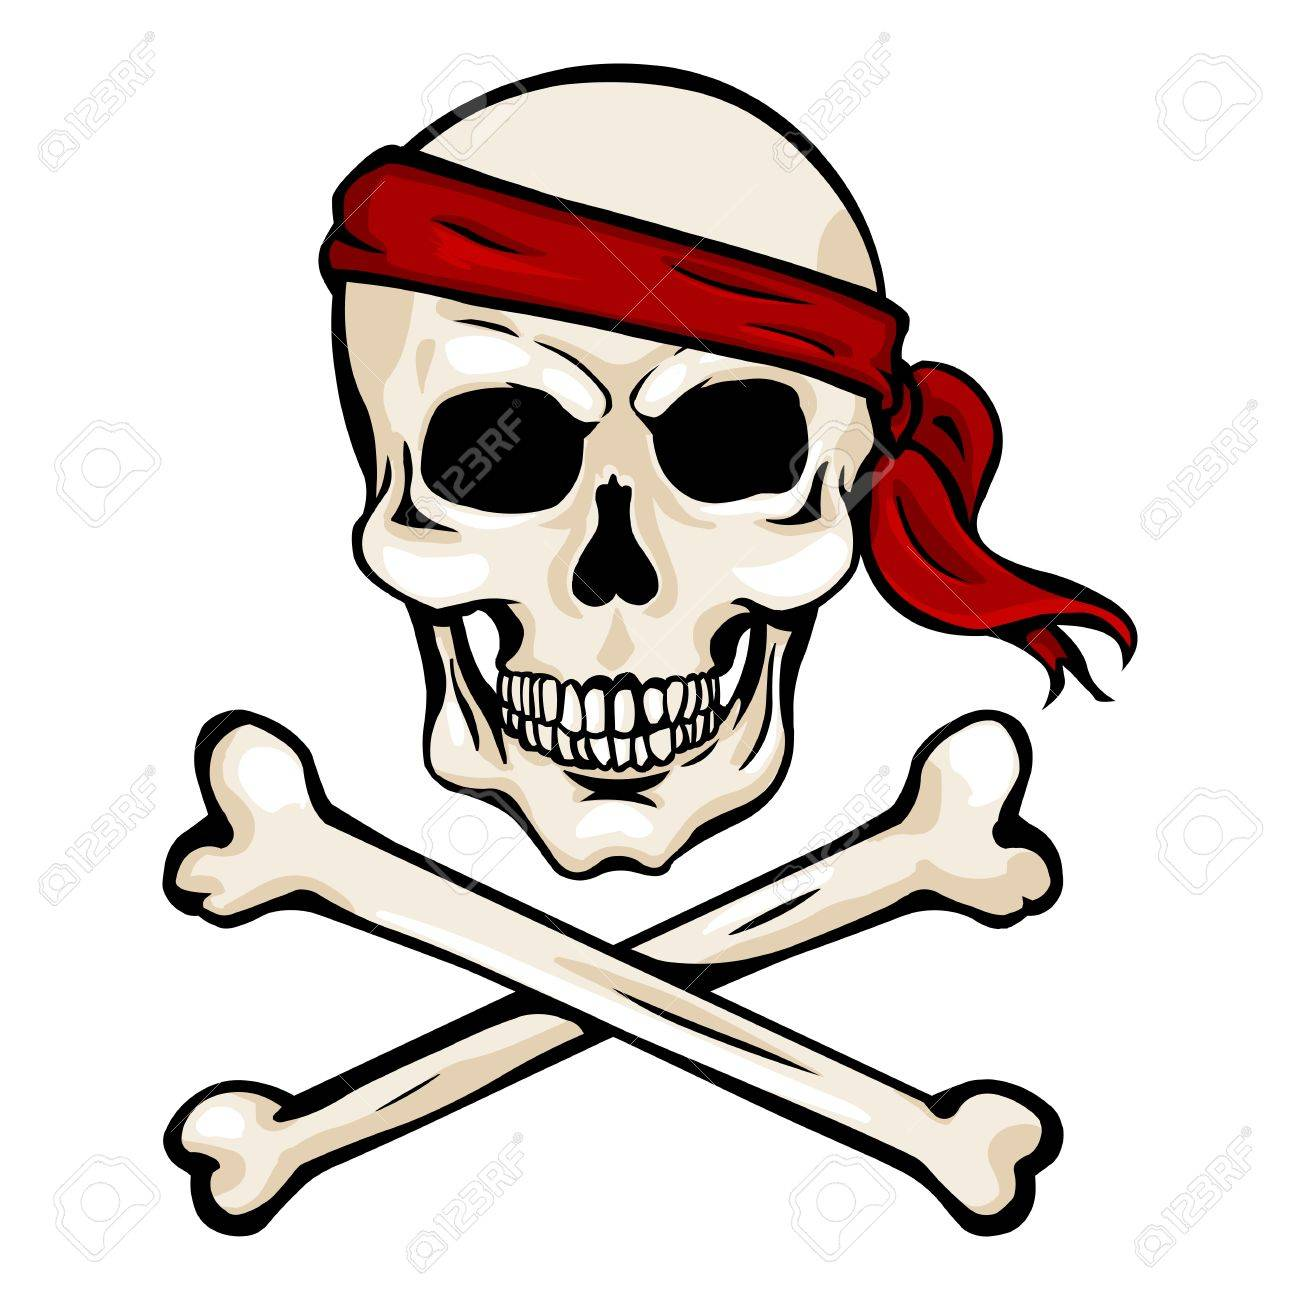 vector single cartoon pirate skull in red headband with cross rh 123rf com Pirate Head Clip Art pirate skull and crossbones clip art free